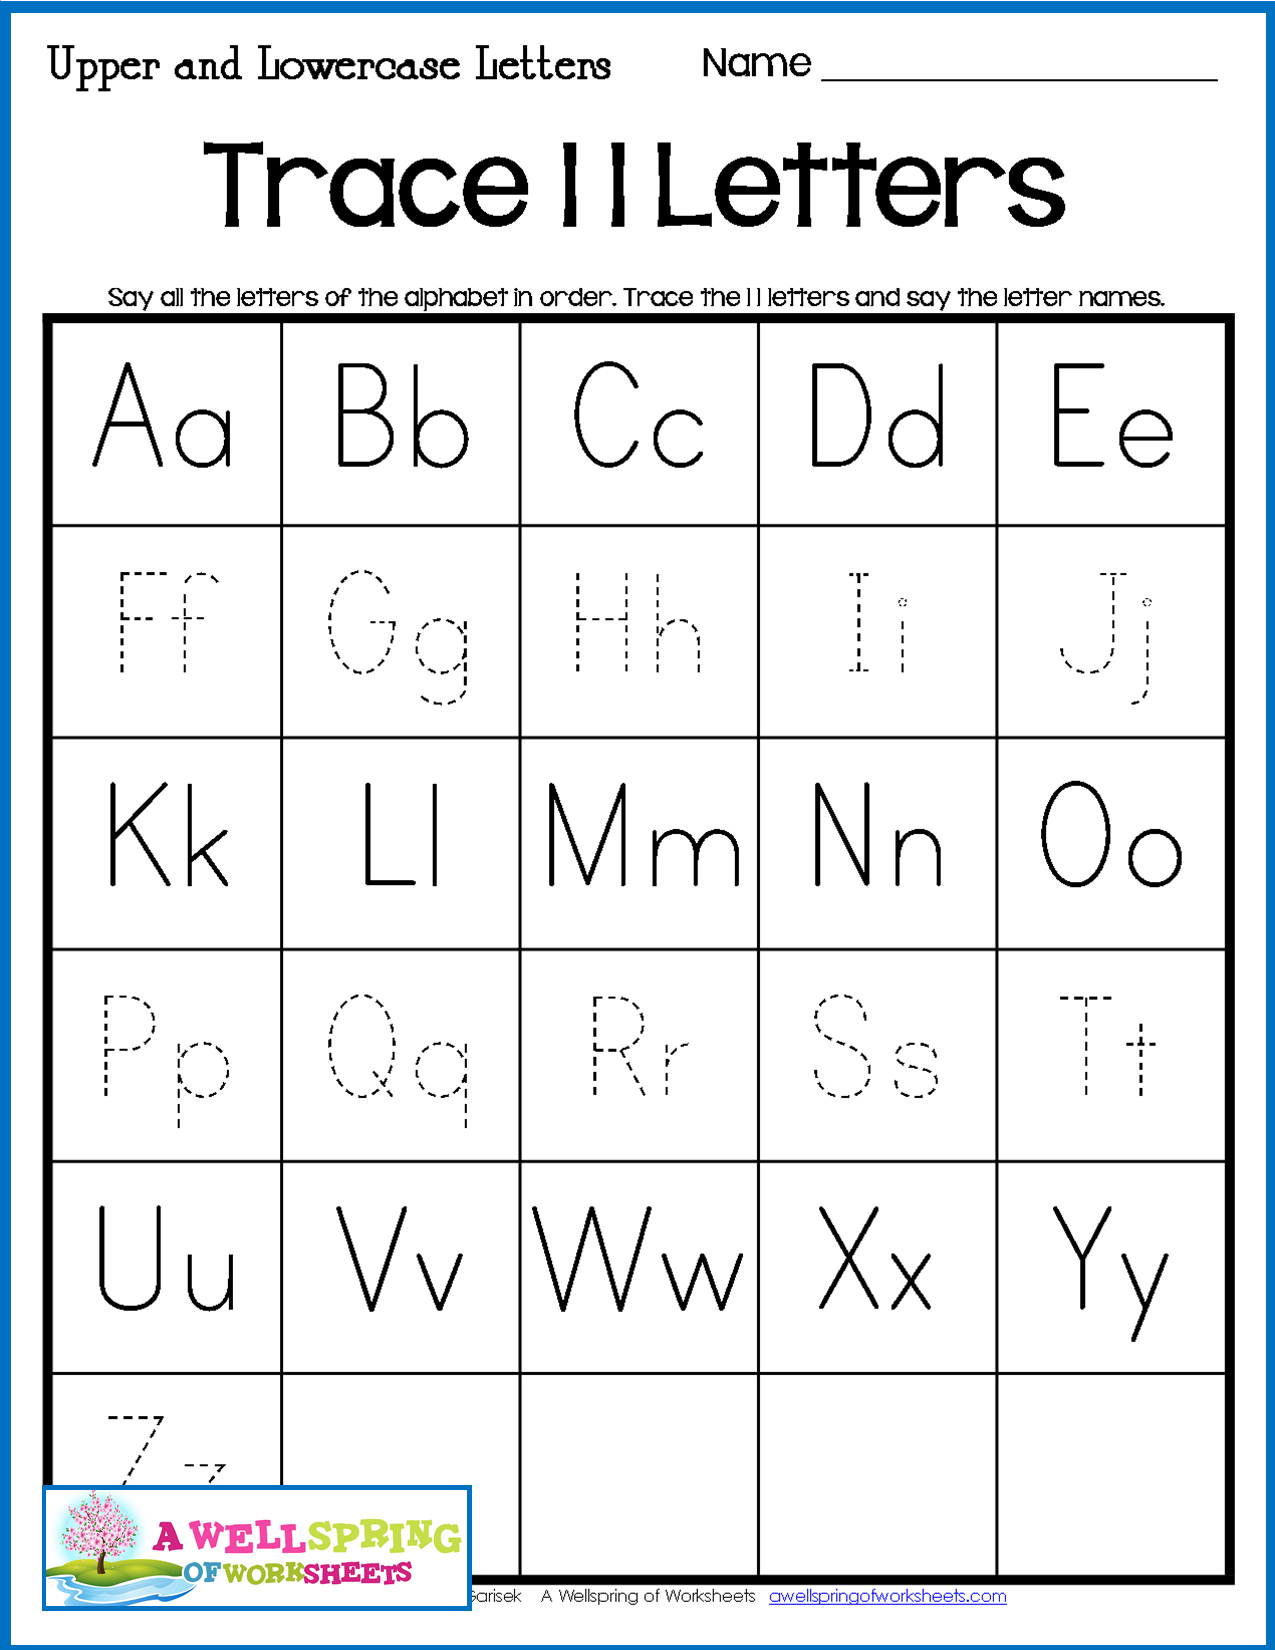 Alphabet Tracing Worksheets - Uppercase & Lowercase Letters throughout Alphabet Tracing Lowercase Letters